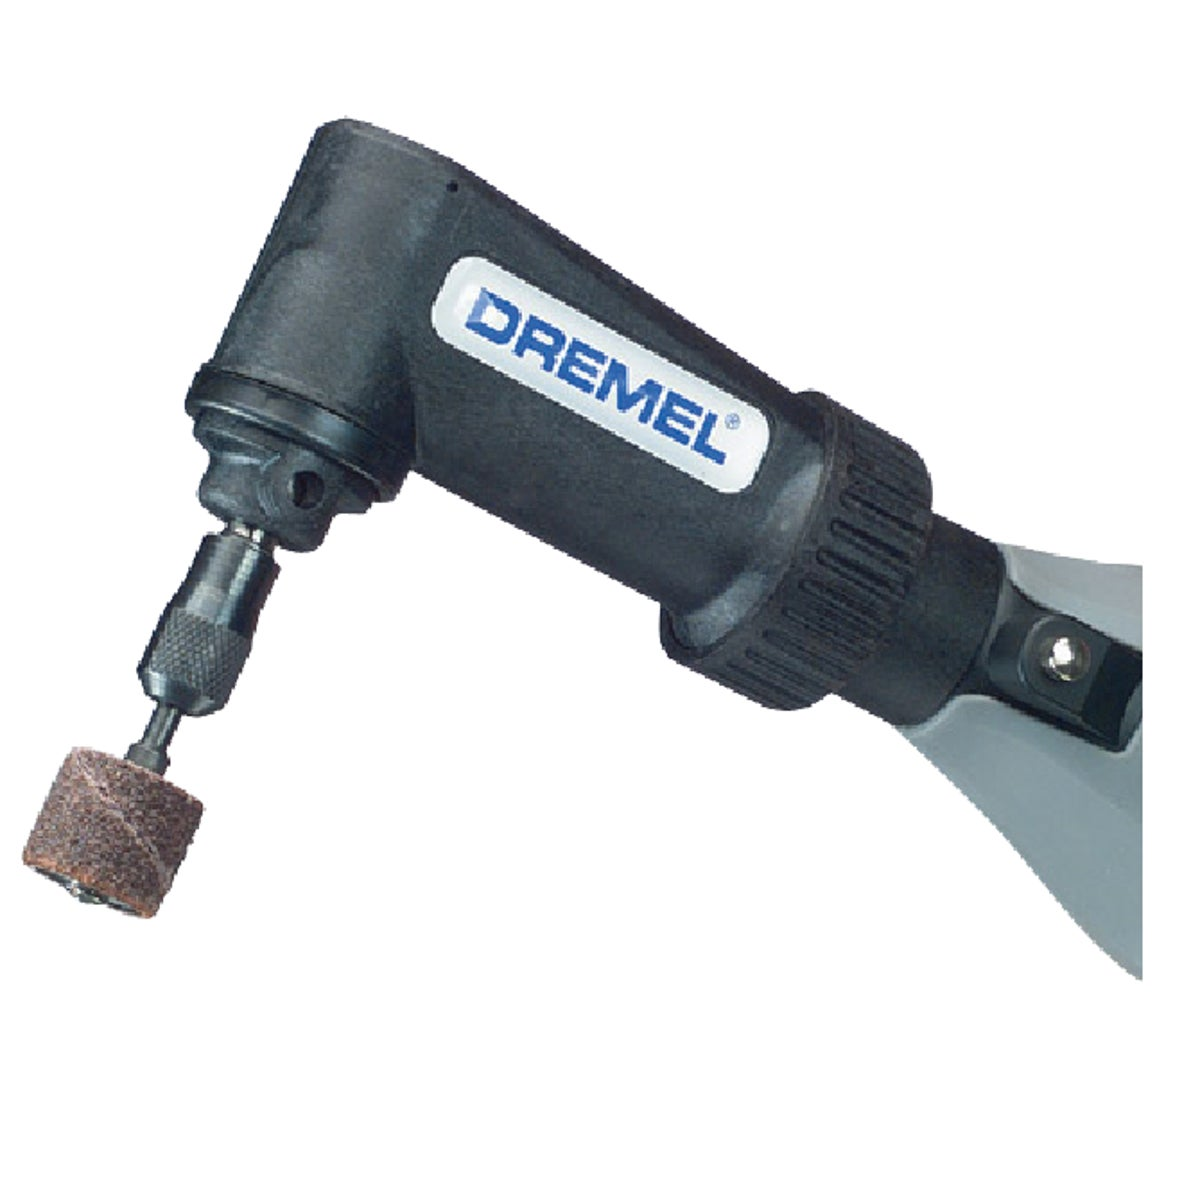 DRIVE ANGLE ATTACHMENT - 575 by Dremel Mfg Co